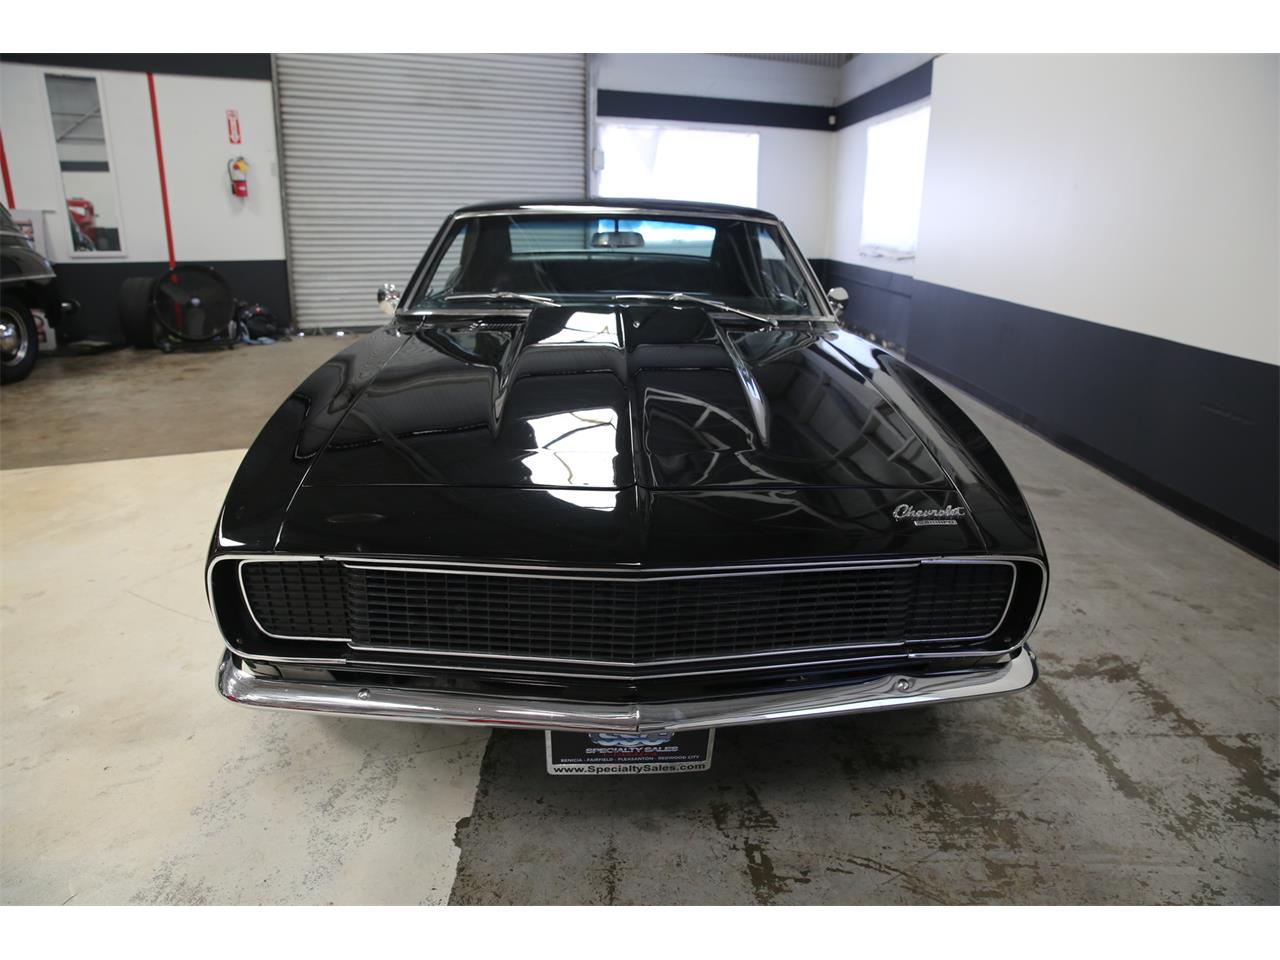 Large Picture of 1967 Camaro located in California - $45,900.00 - L7XP